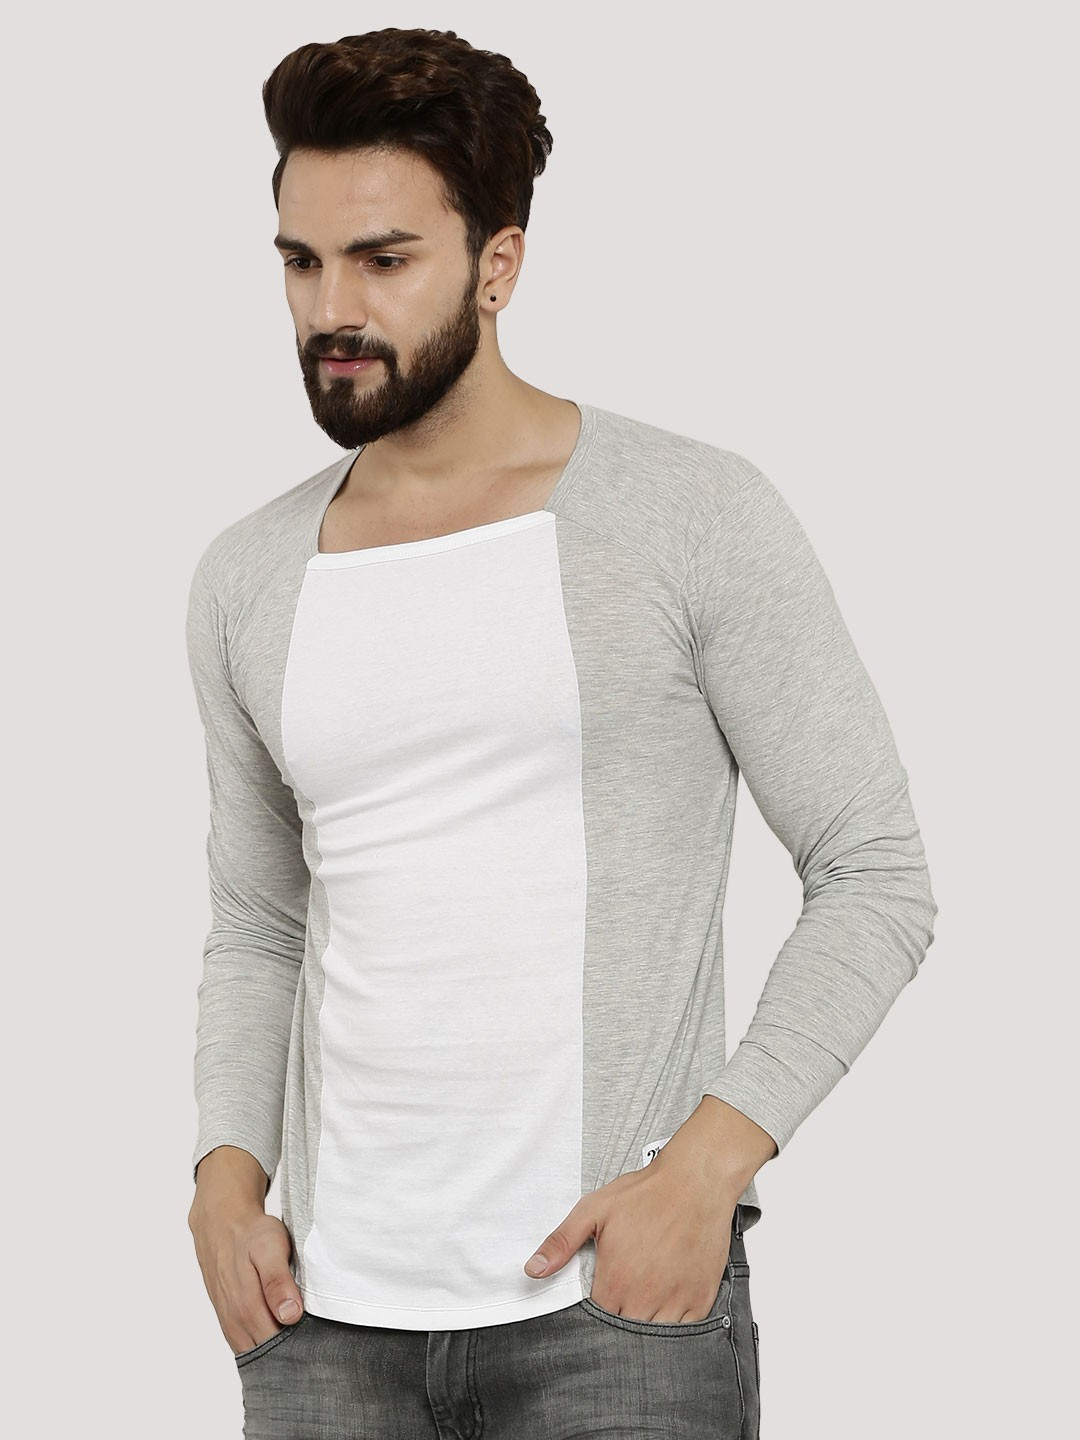 buy kultprit square neck full sleeve t shirt for men men